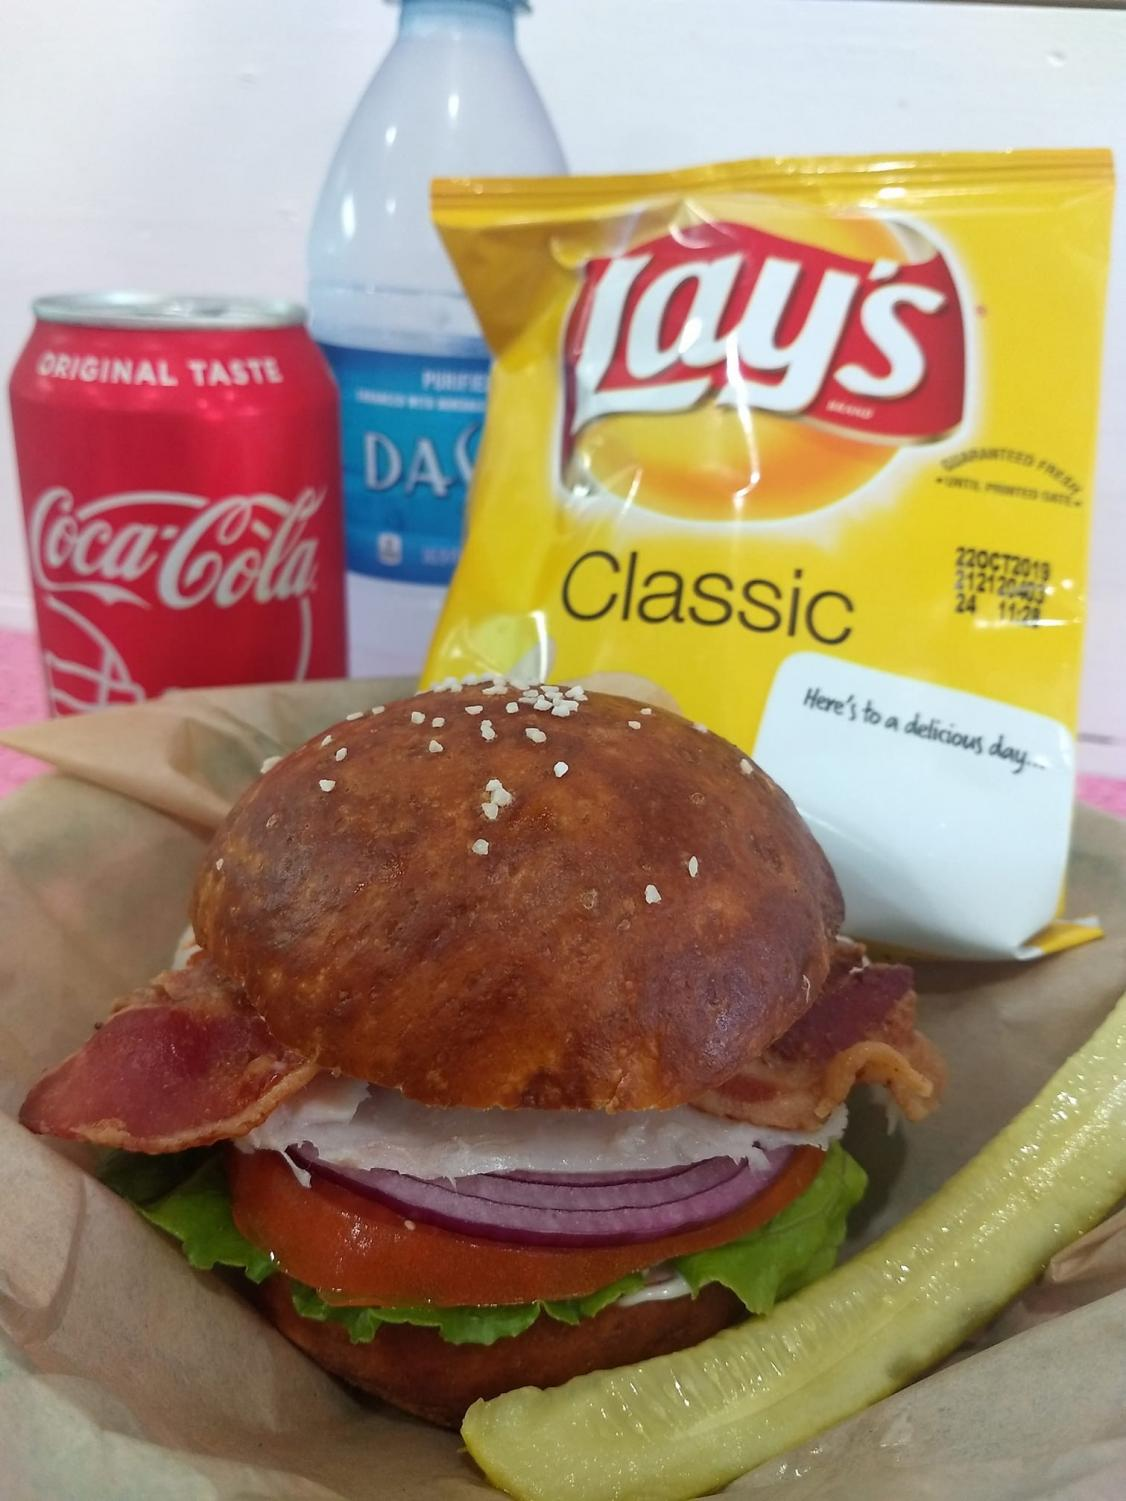 Flour Child Bakery, in downtown Grand Ledge, introduces a new lunch menu starting this fall. Augustine, the owner, bakes 11 flavors of bagels fresh every day, in addition to the new lunch selection of sandwiches made with fresh-baked breads and buns.